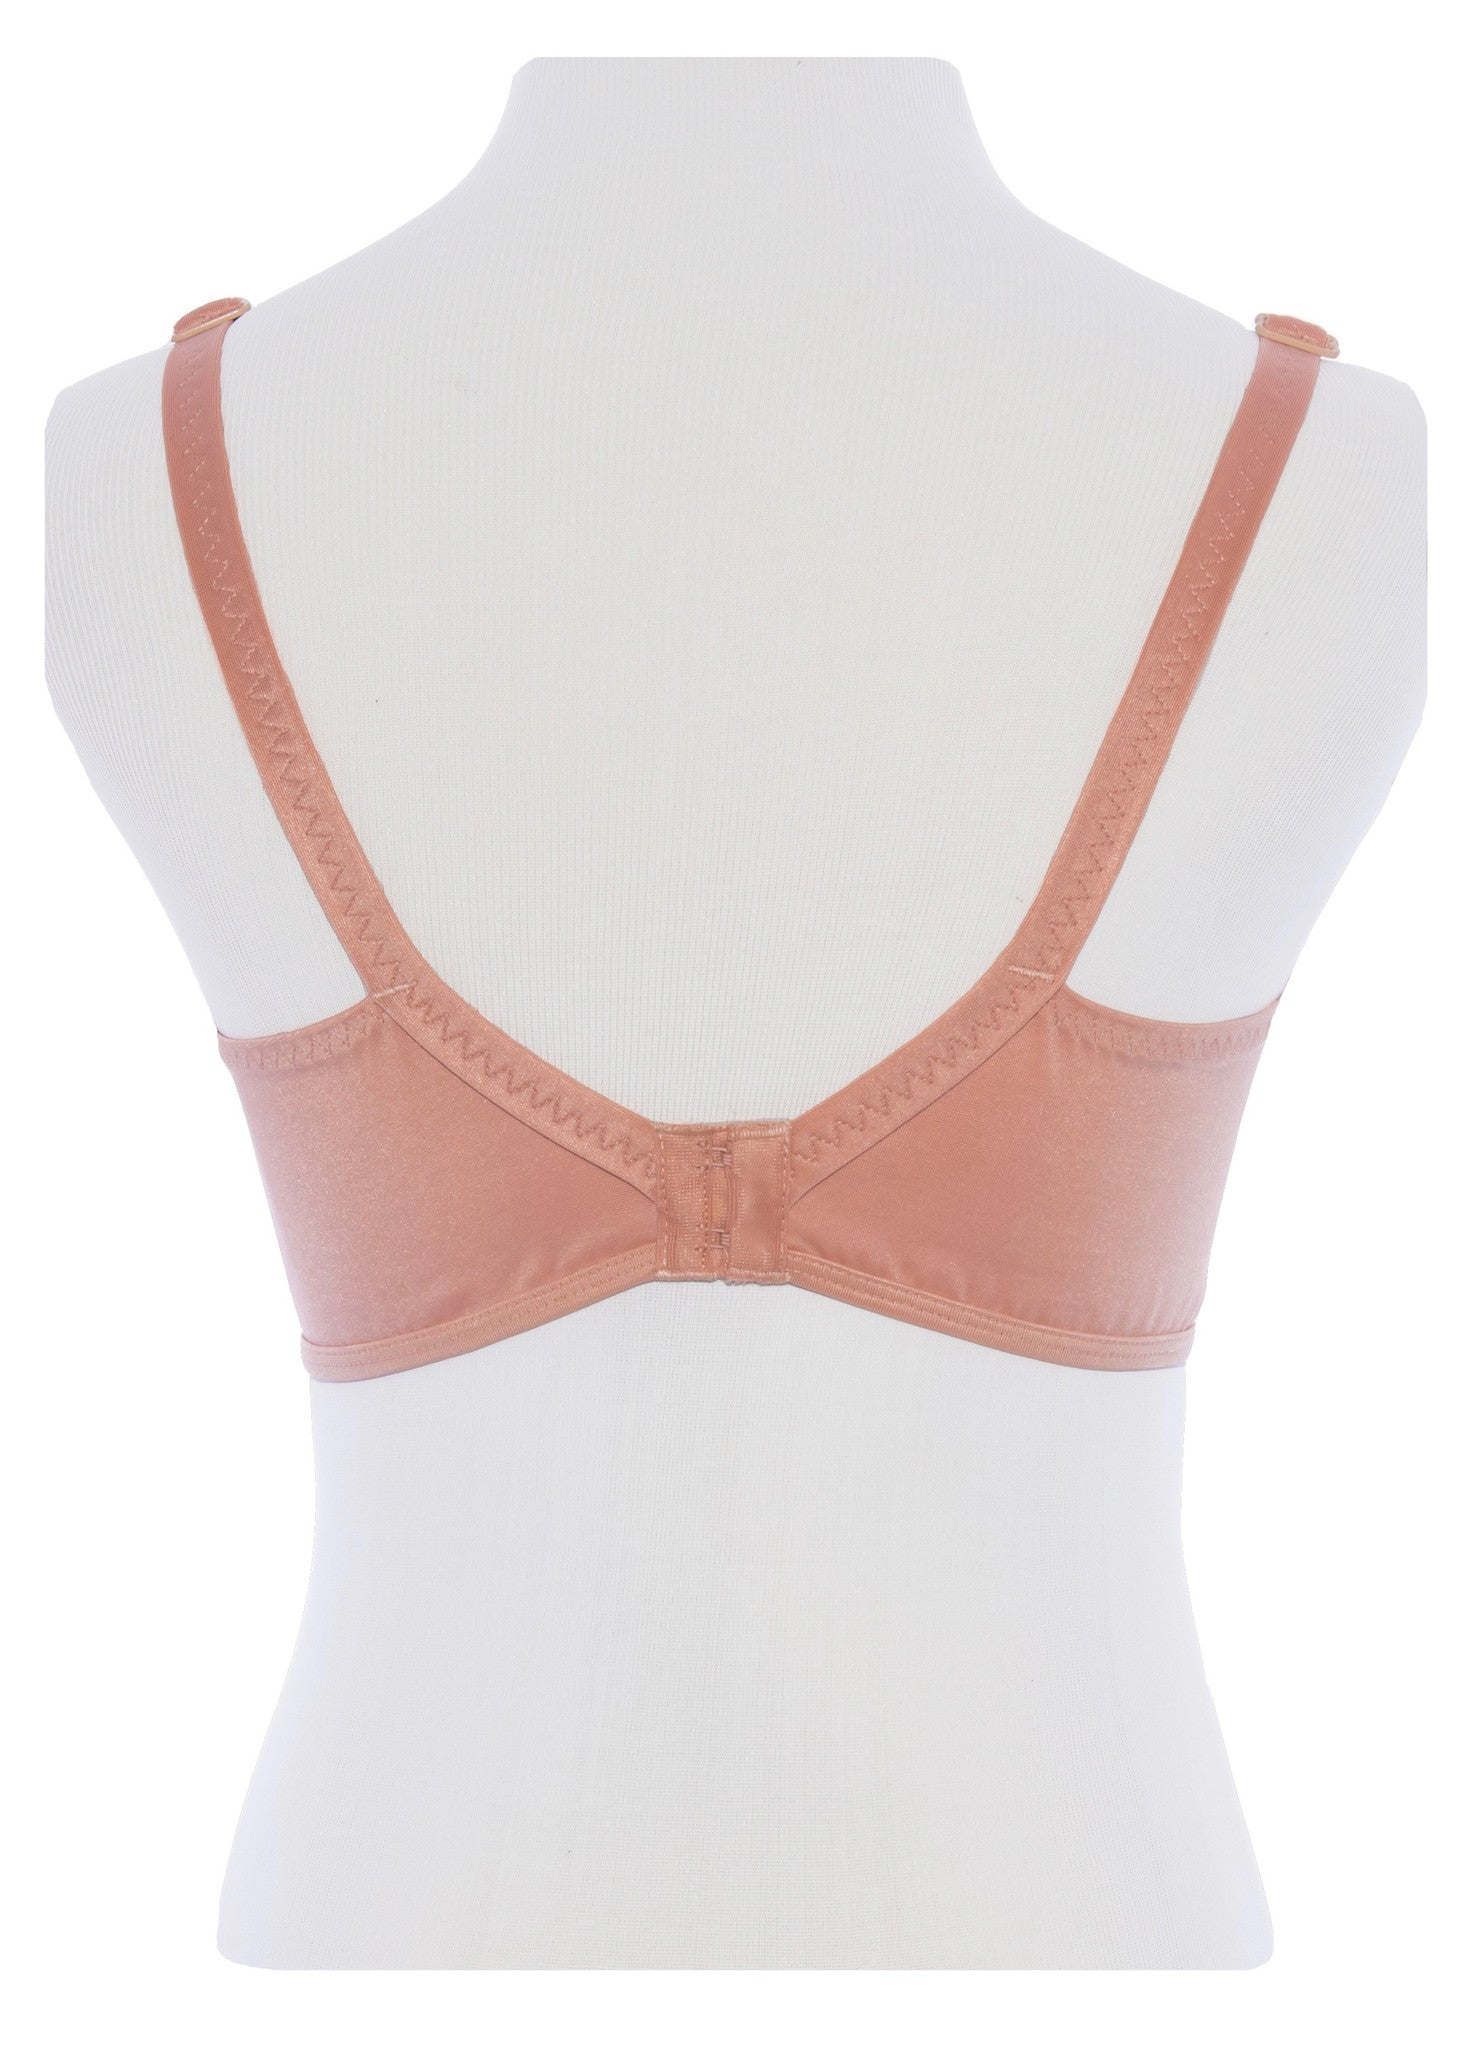 Back Closure Bra Mesh Expandable Cup